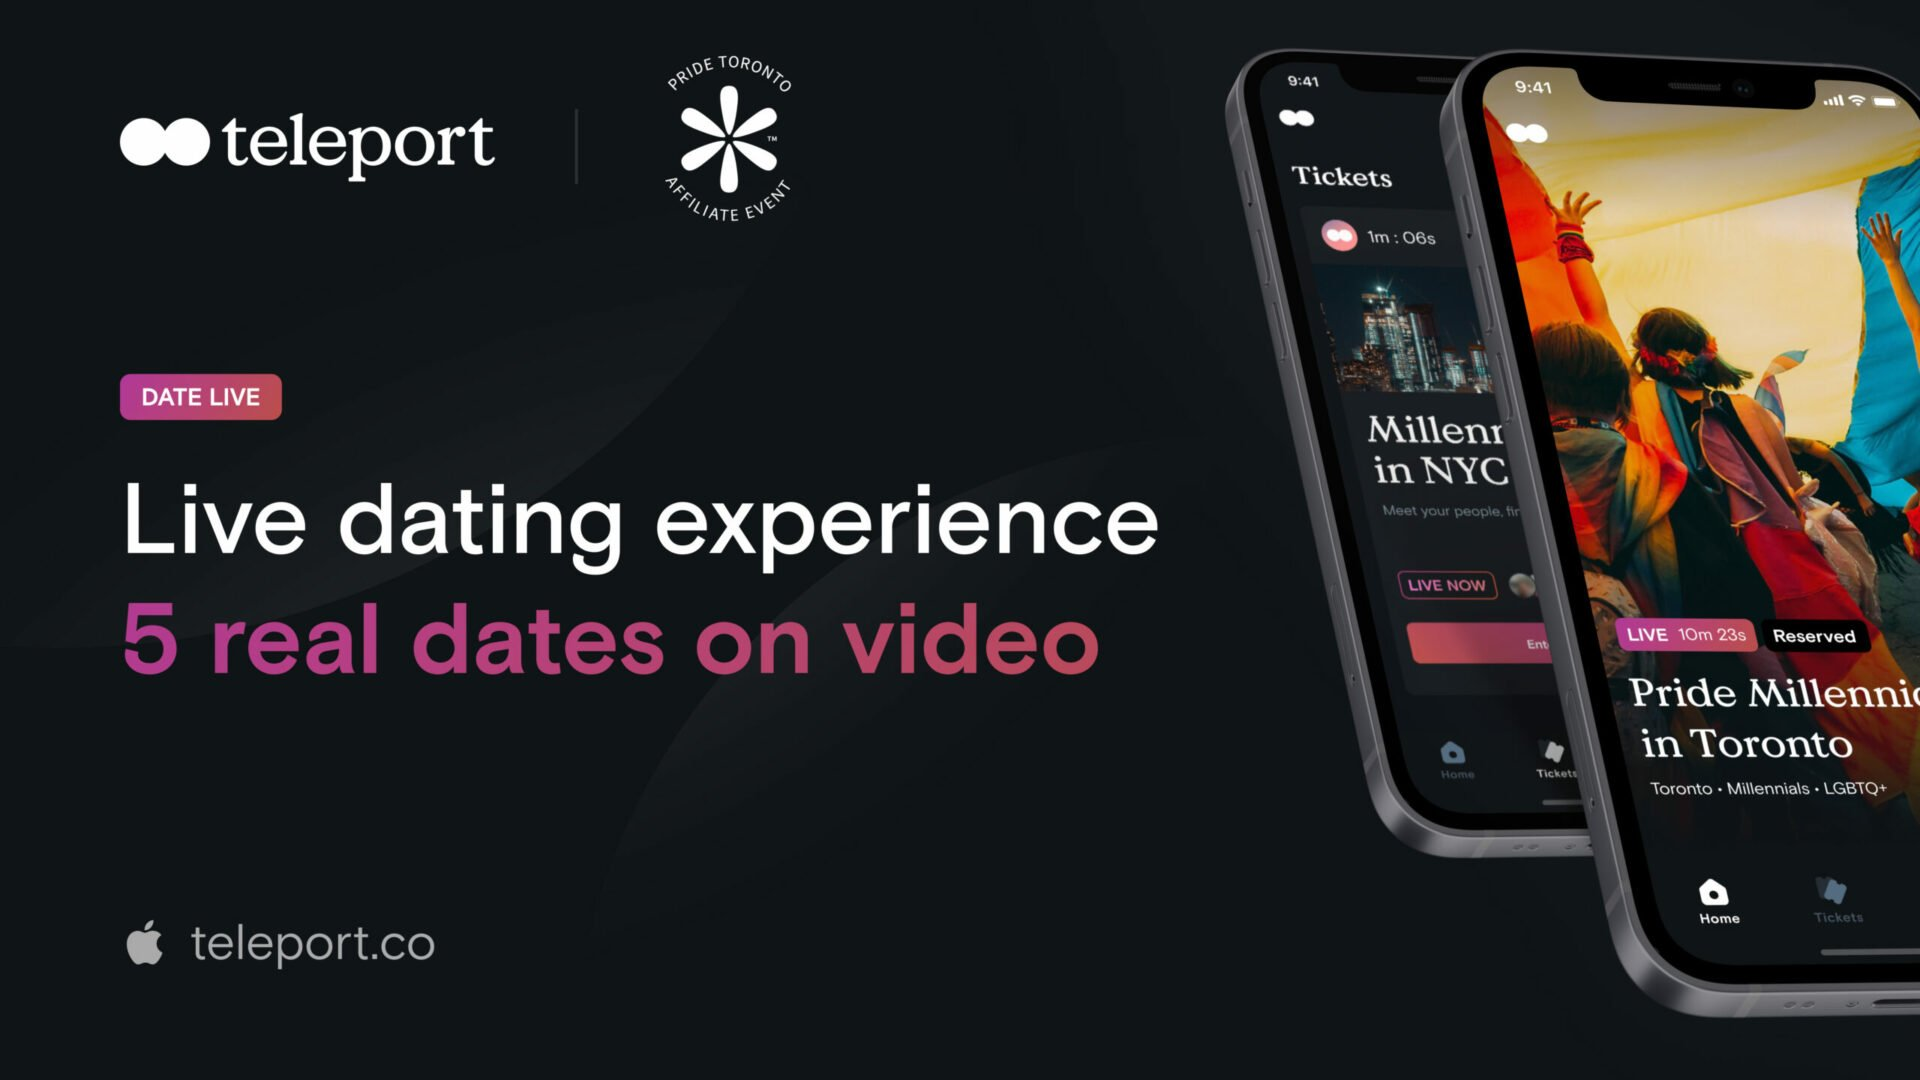 Text: Live dating experience 5 real dates on video